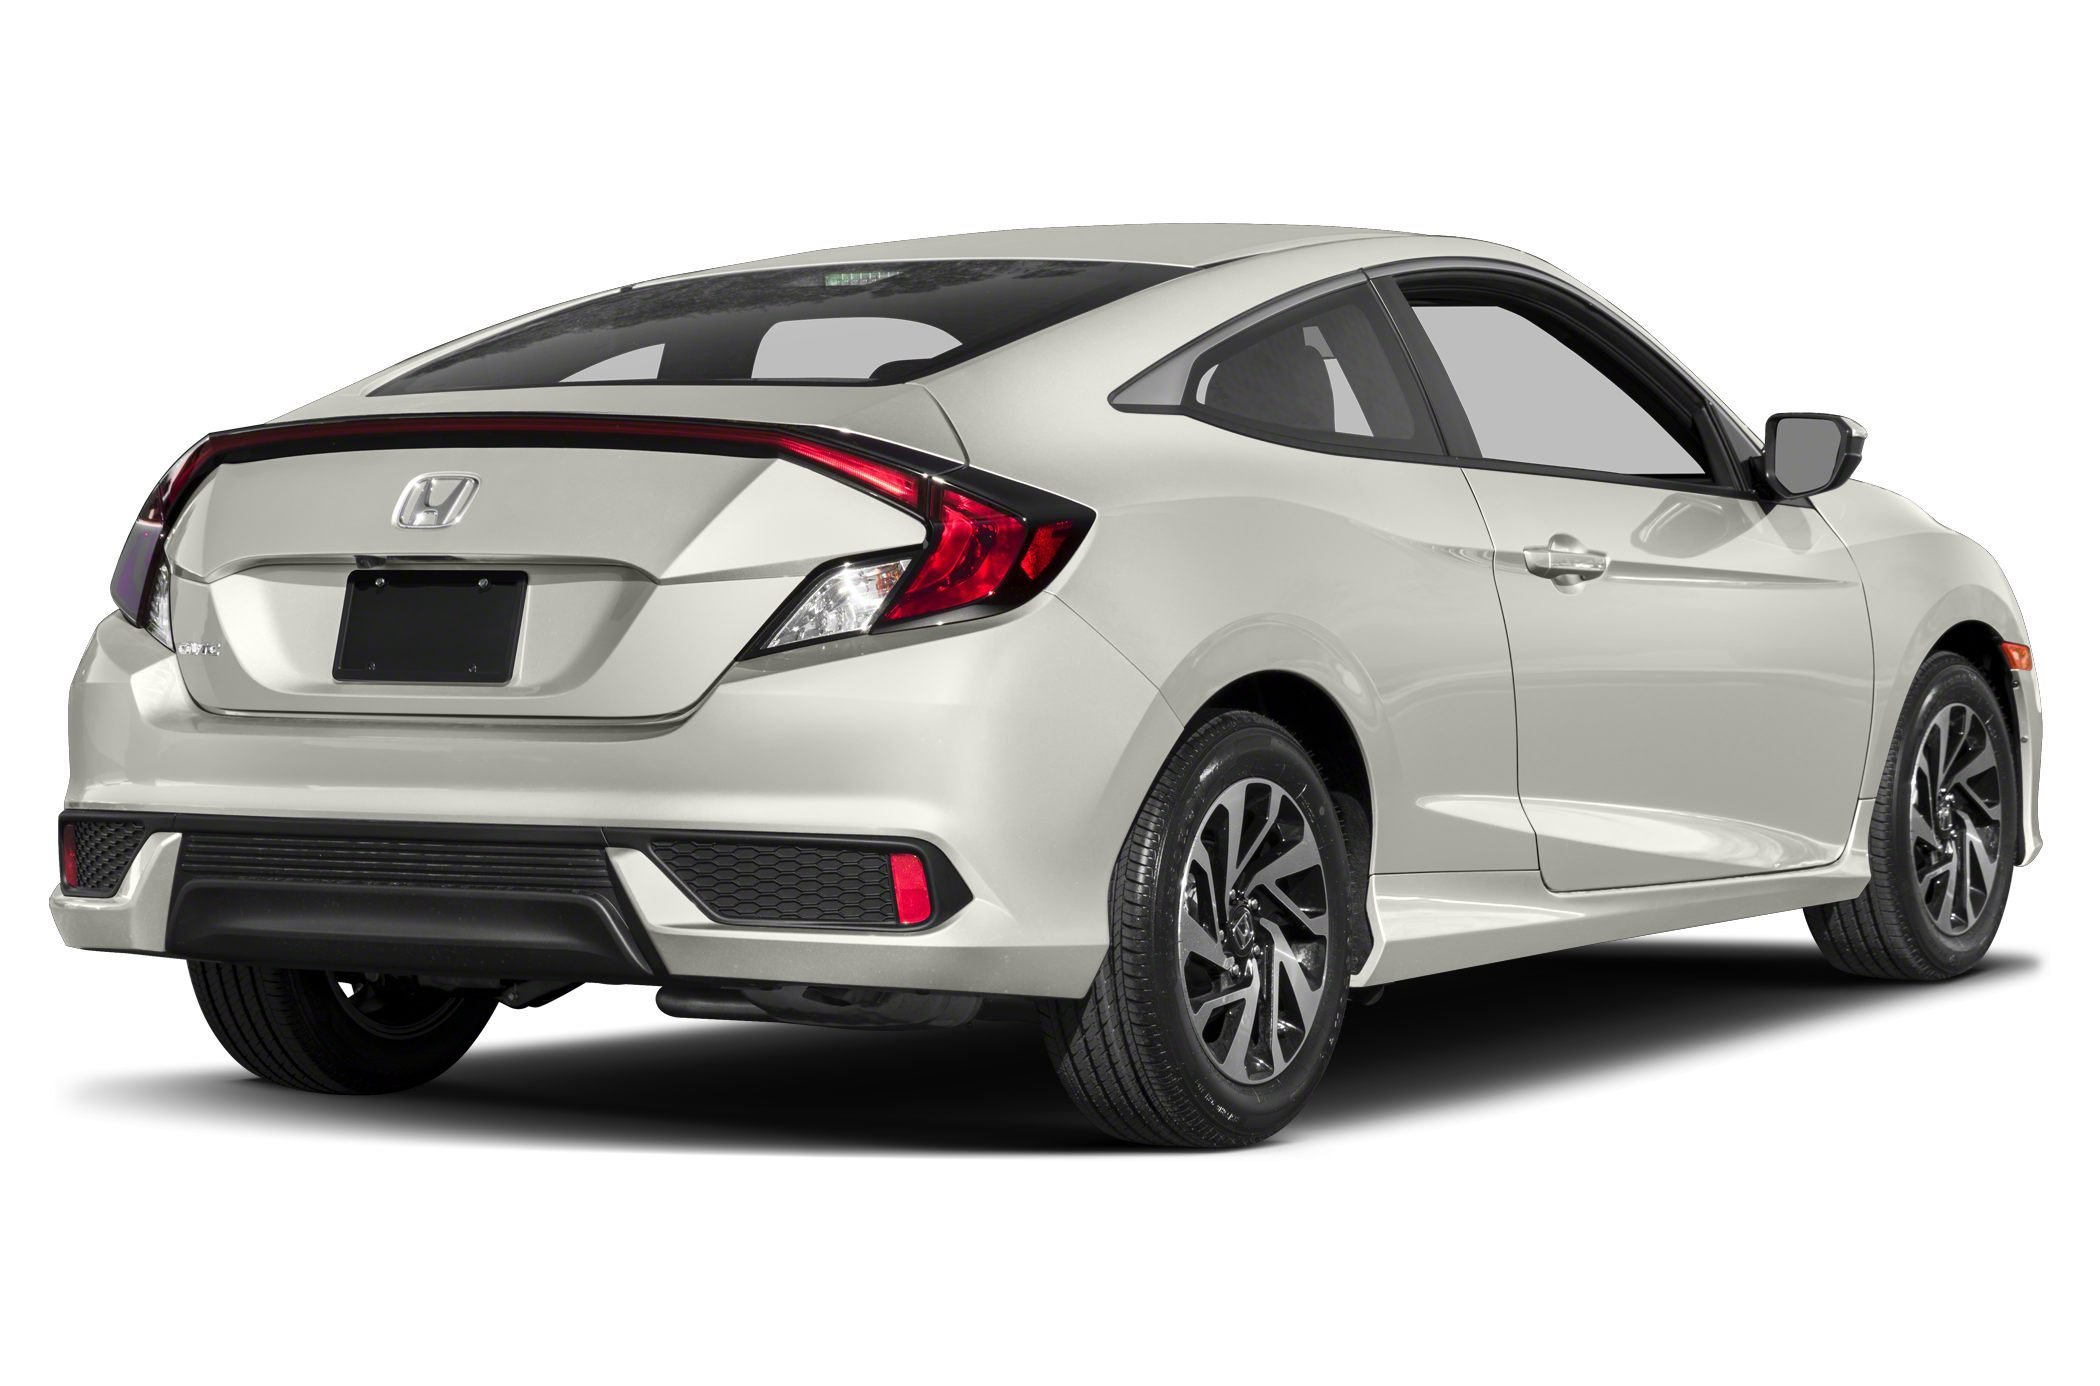 New 2017 Honda Civic Price Photos Reviews Safety On This Month